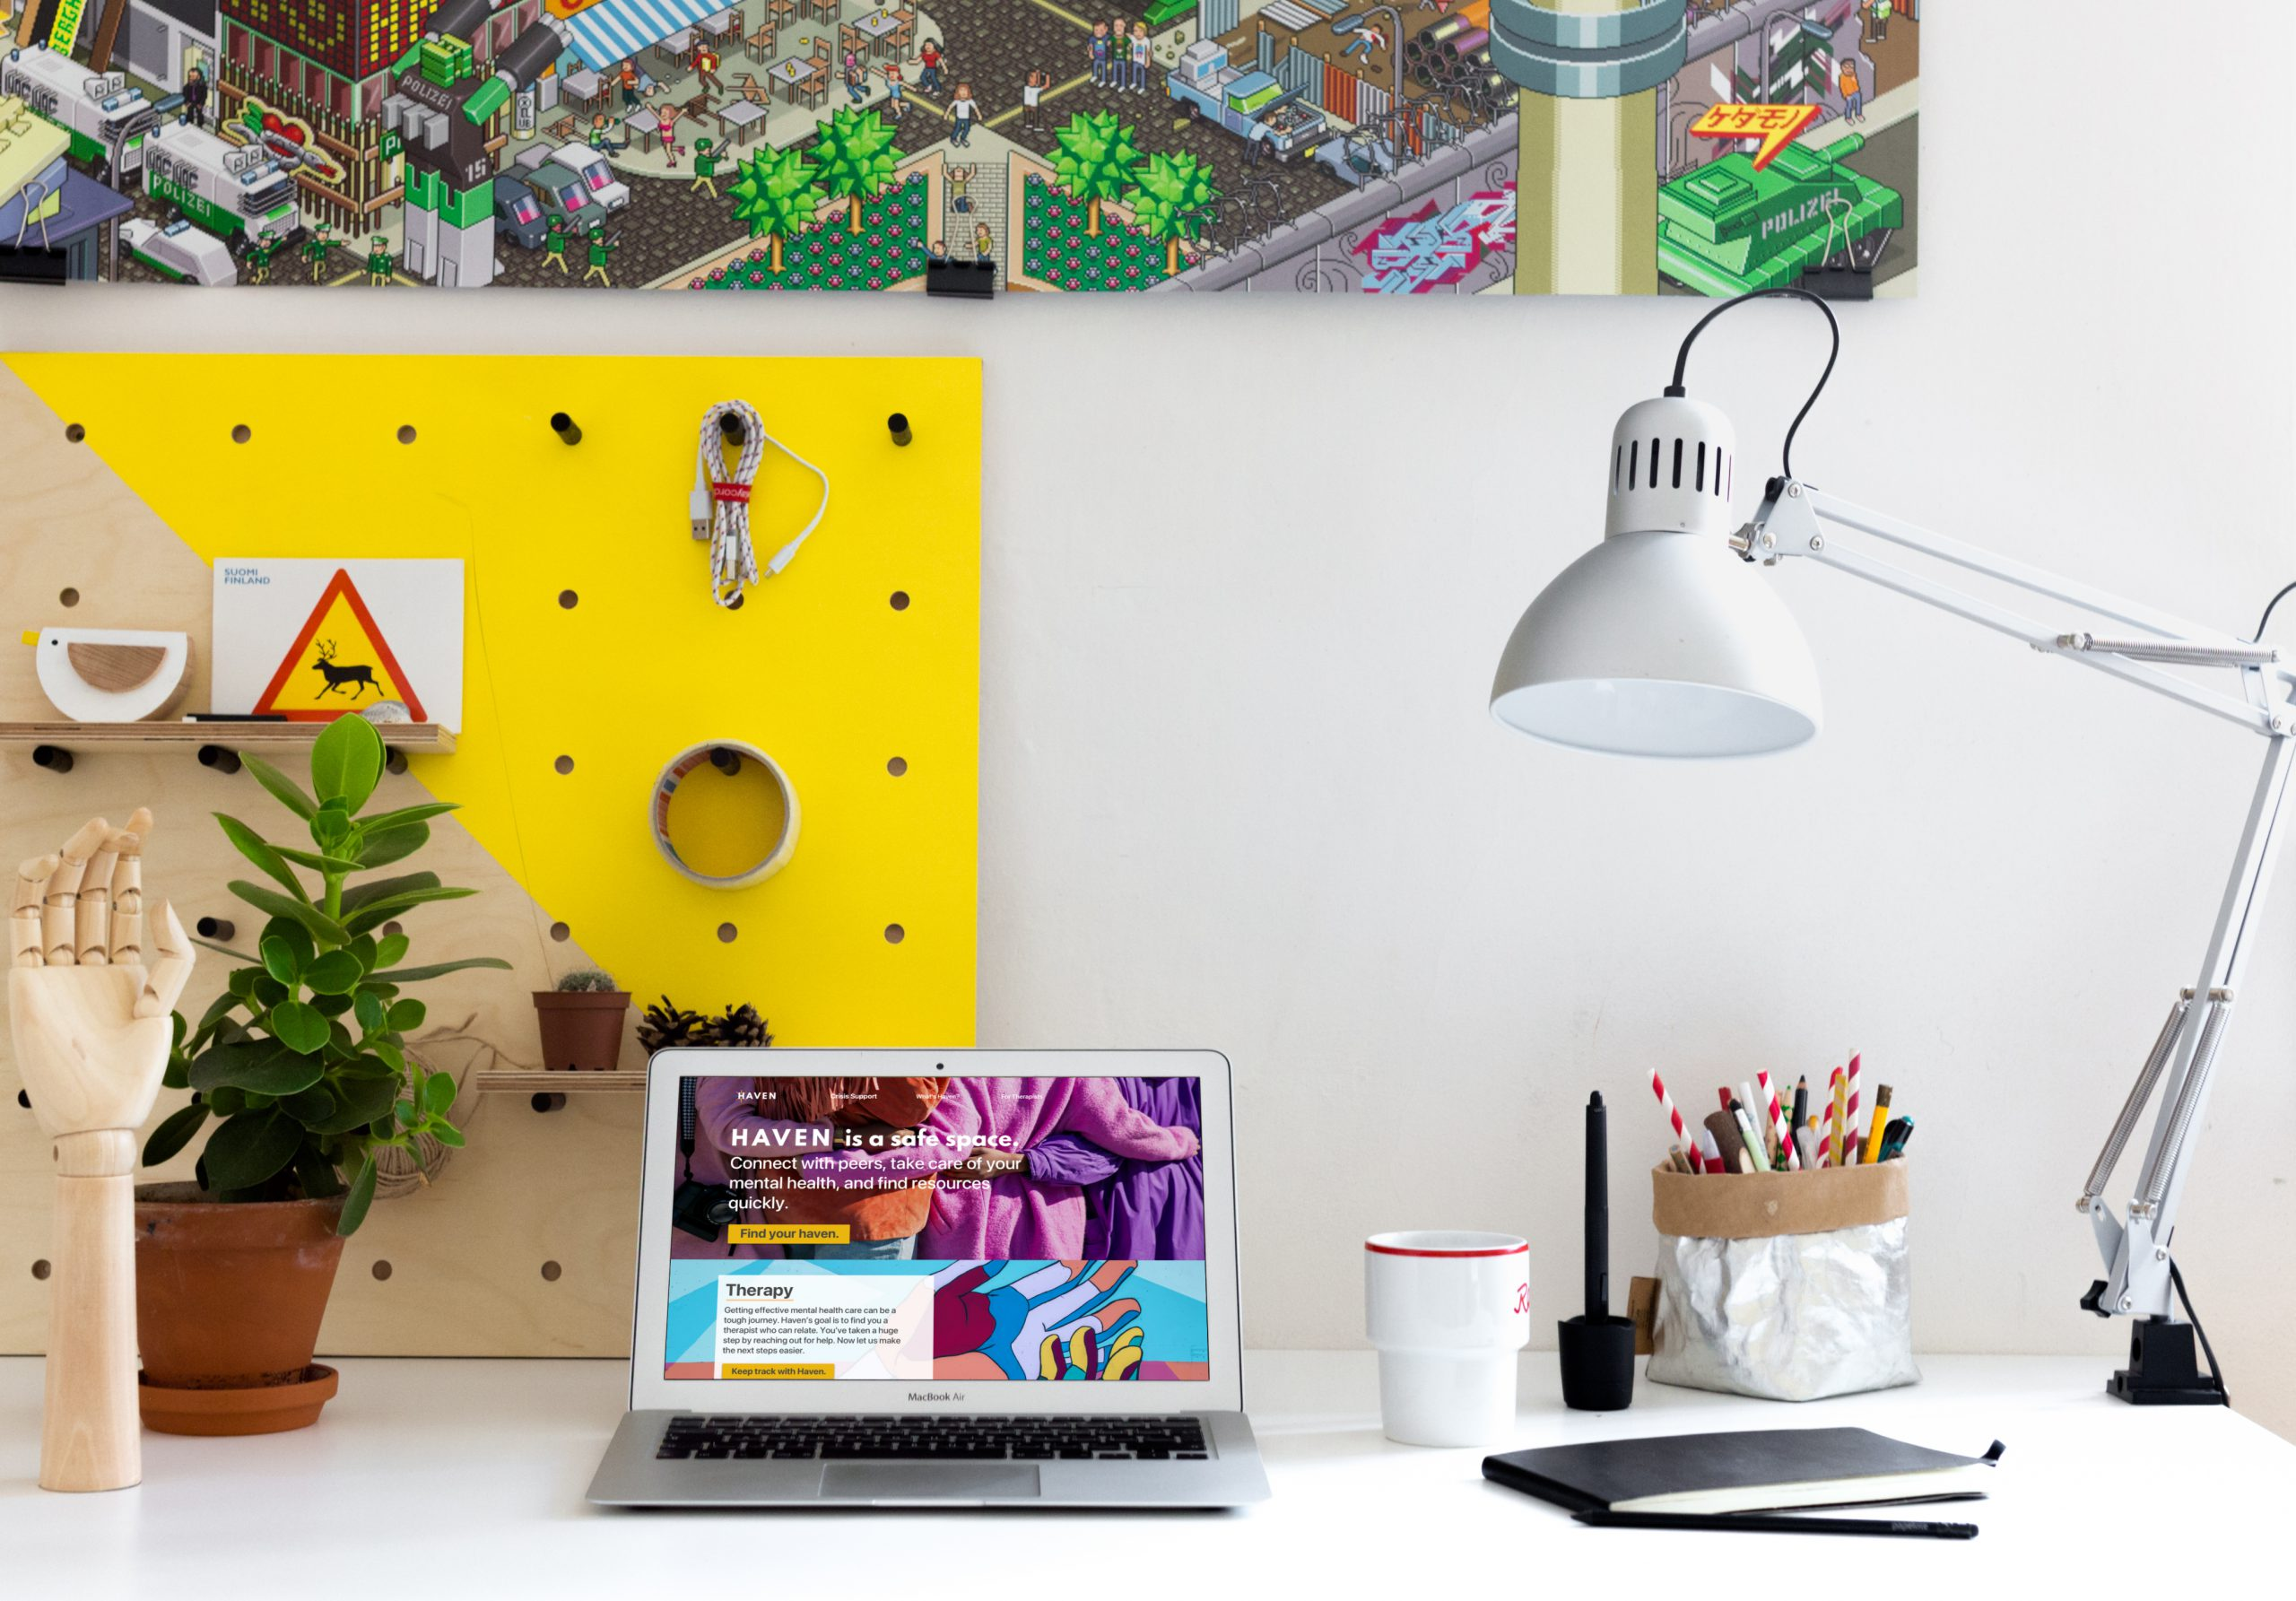 bright-office-environment-mockup-with-macbook-air